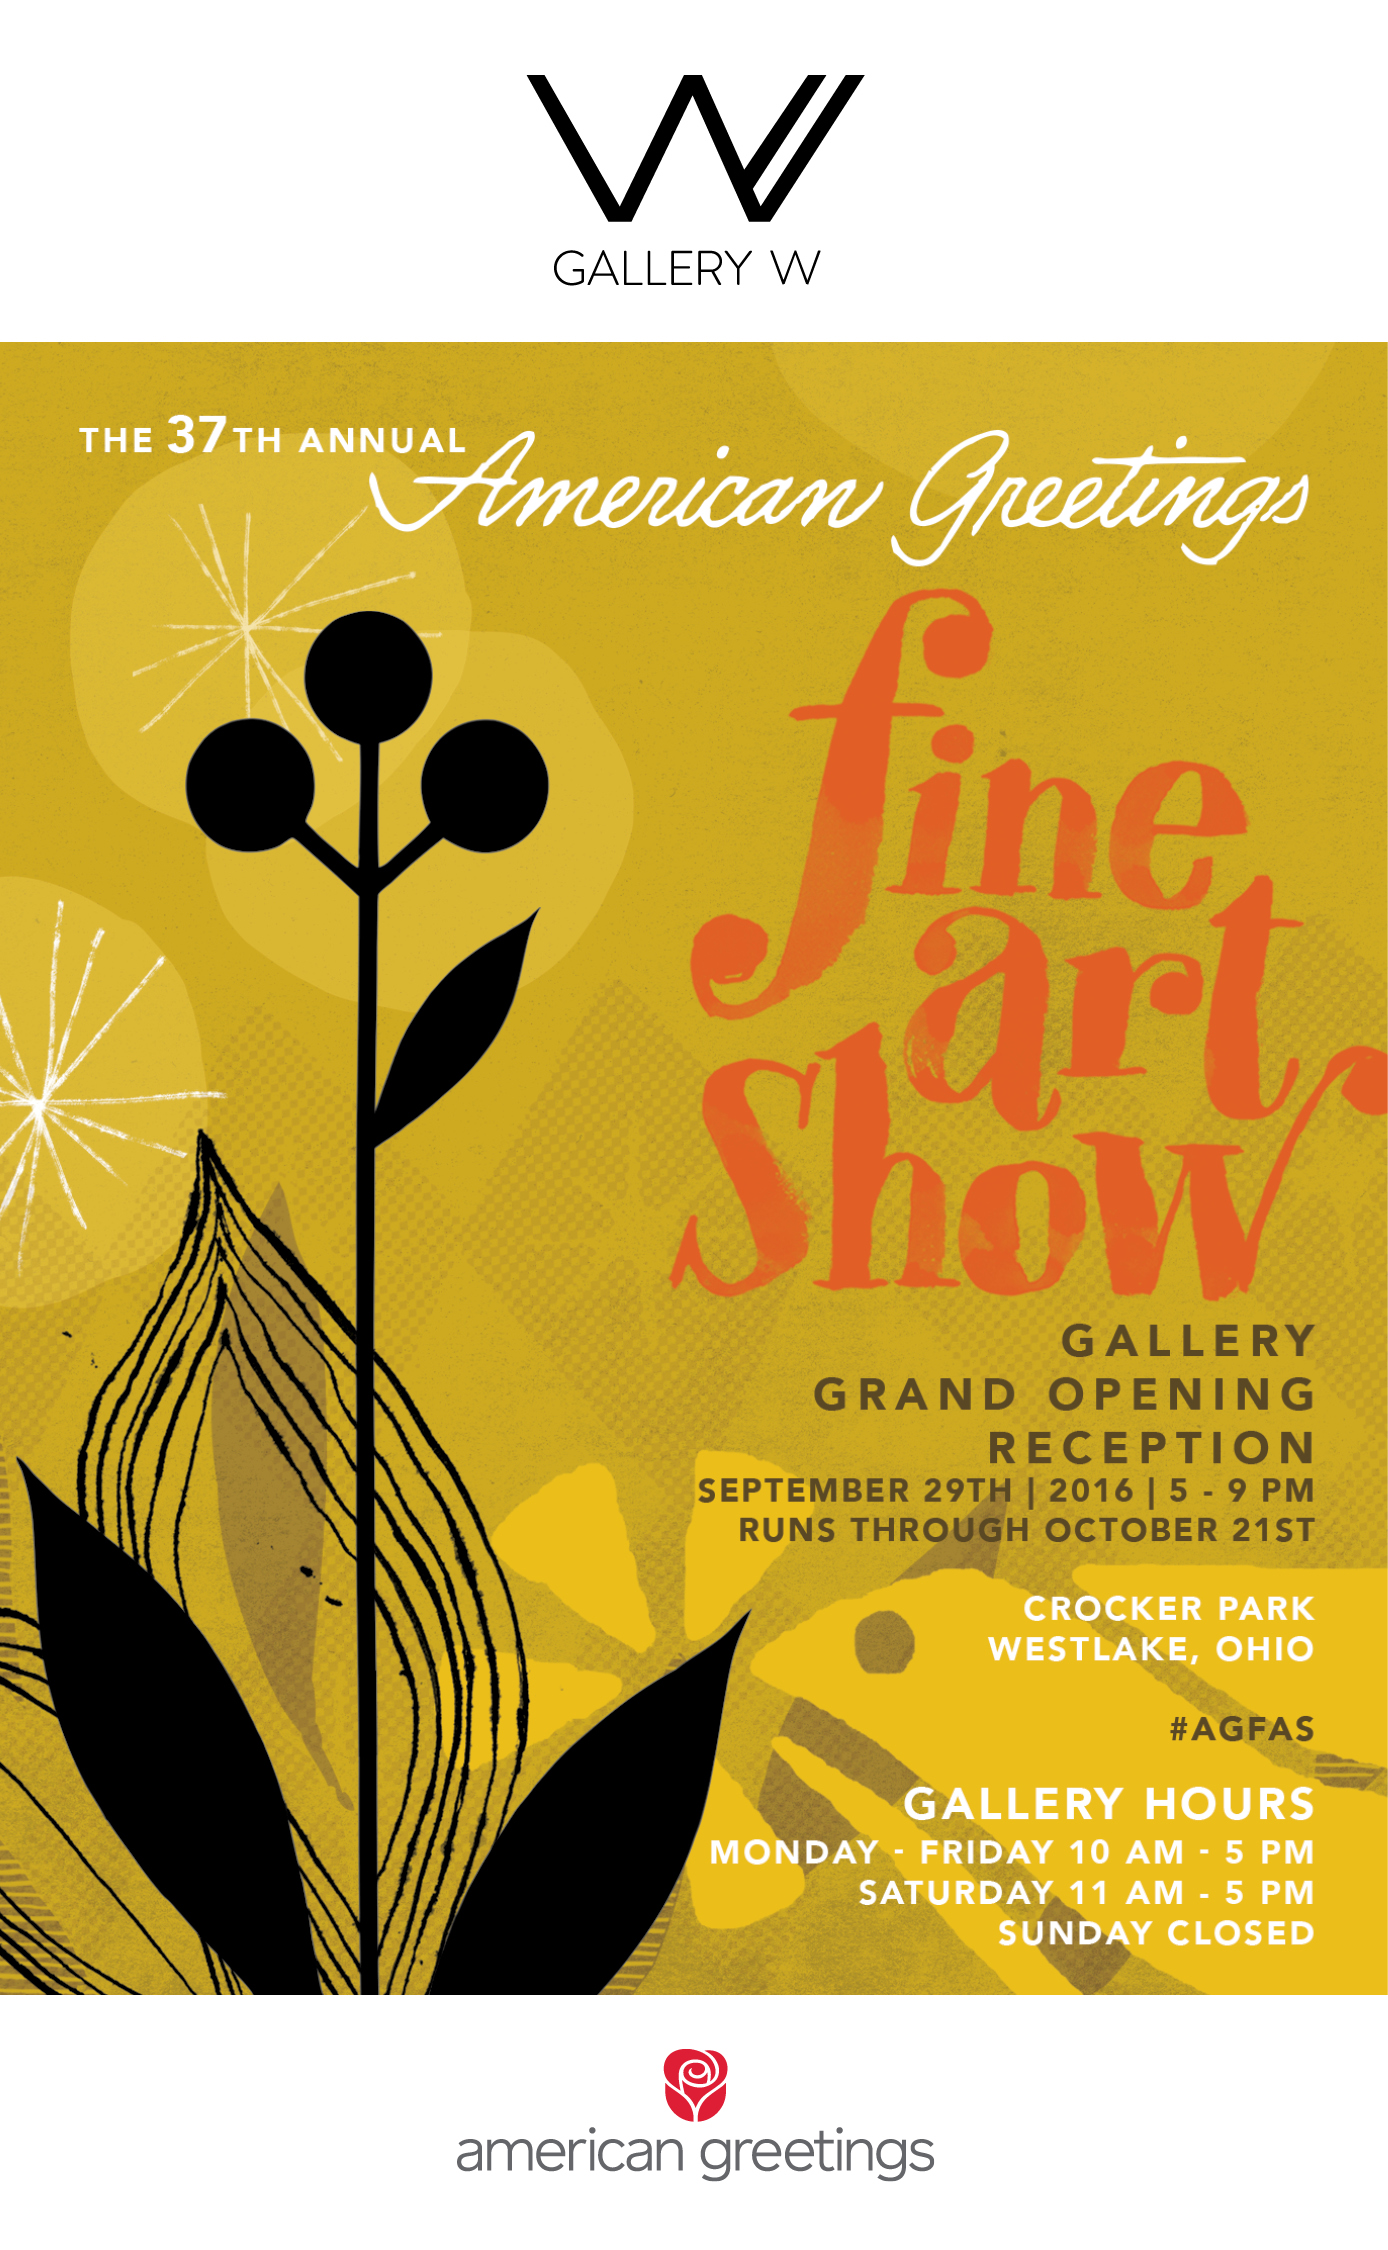 American greetings welcomes the public to gallery w at new american greetings welcomes the public to gallery w at new creative studios kristyandbryce Images